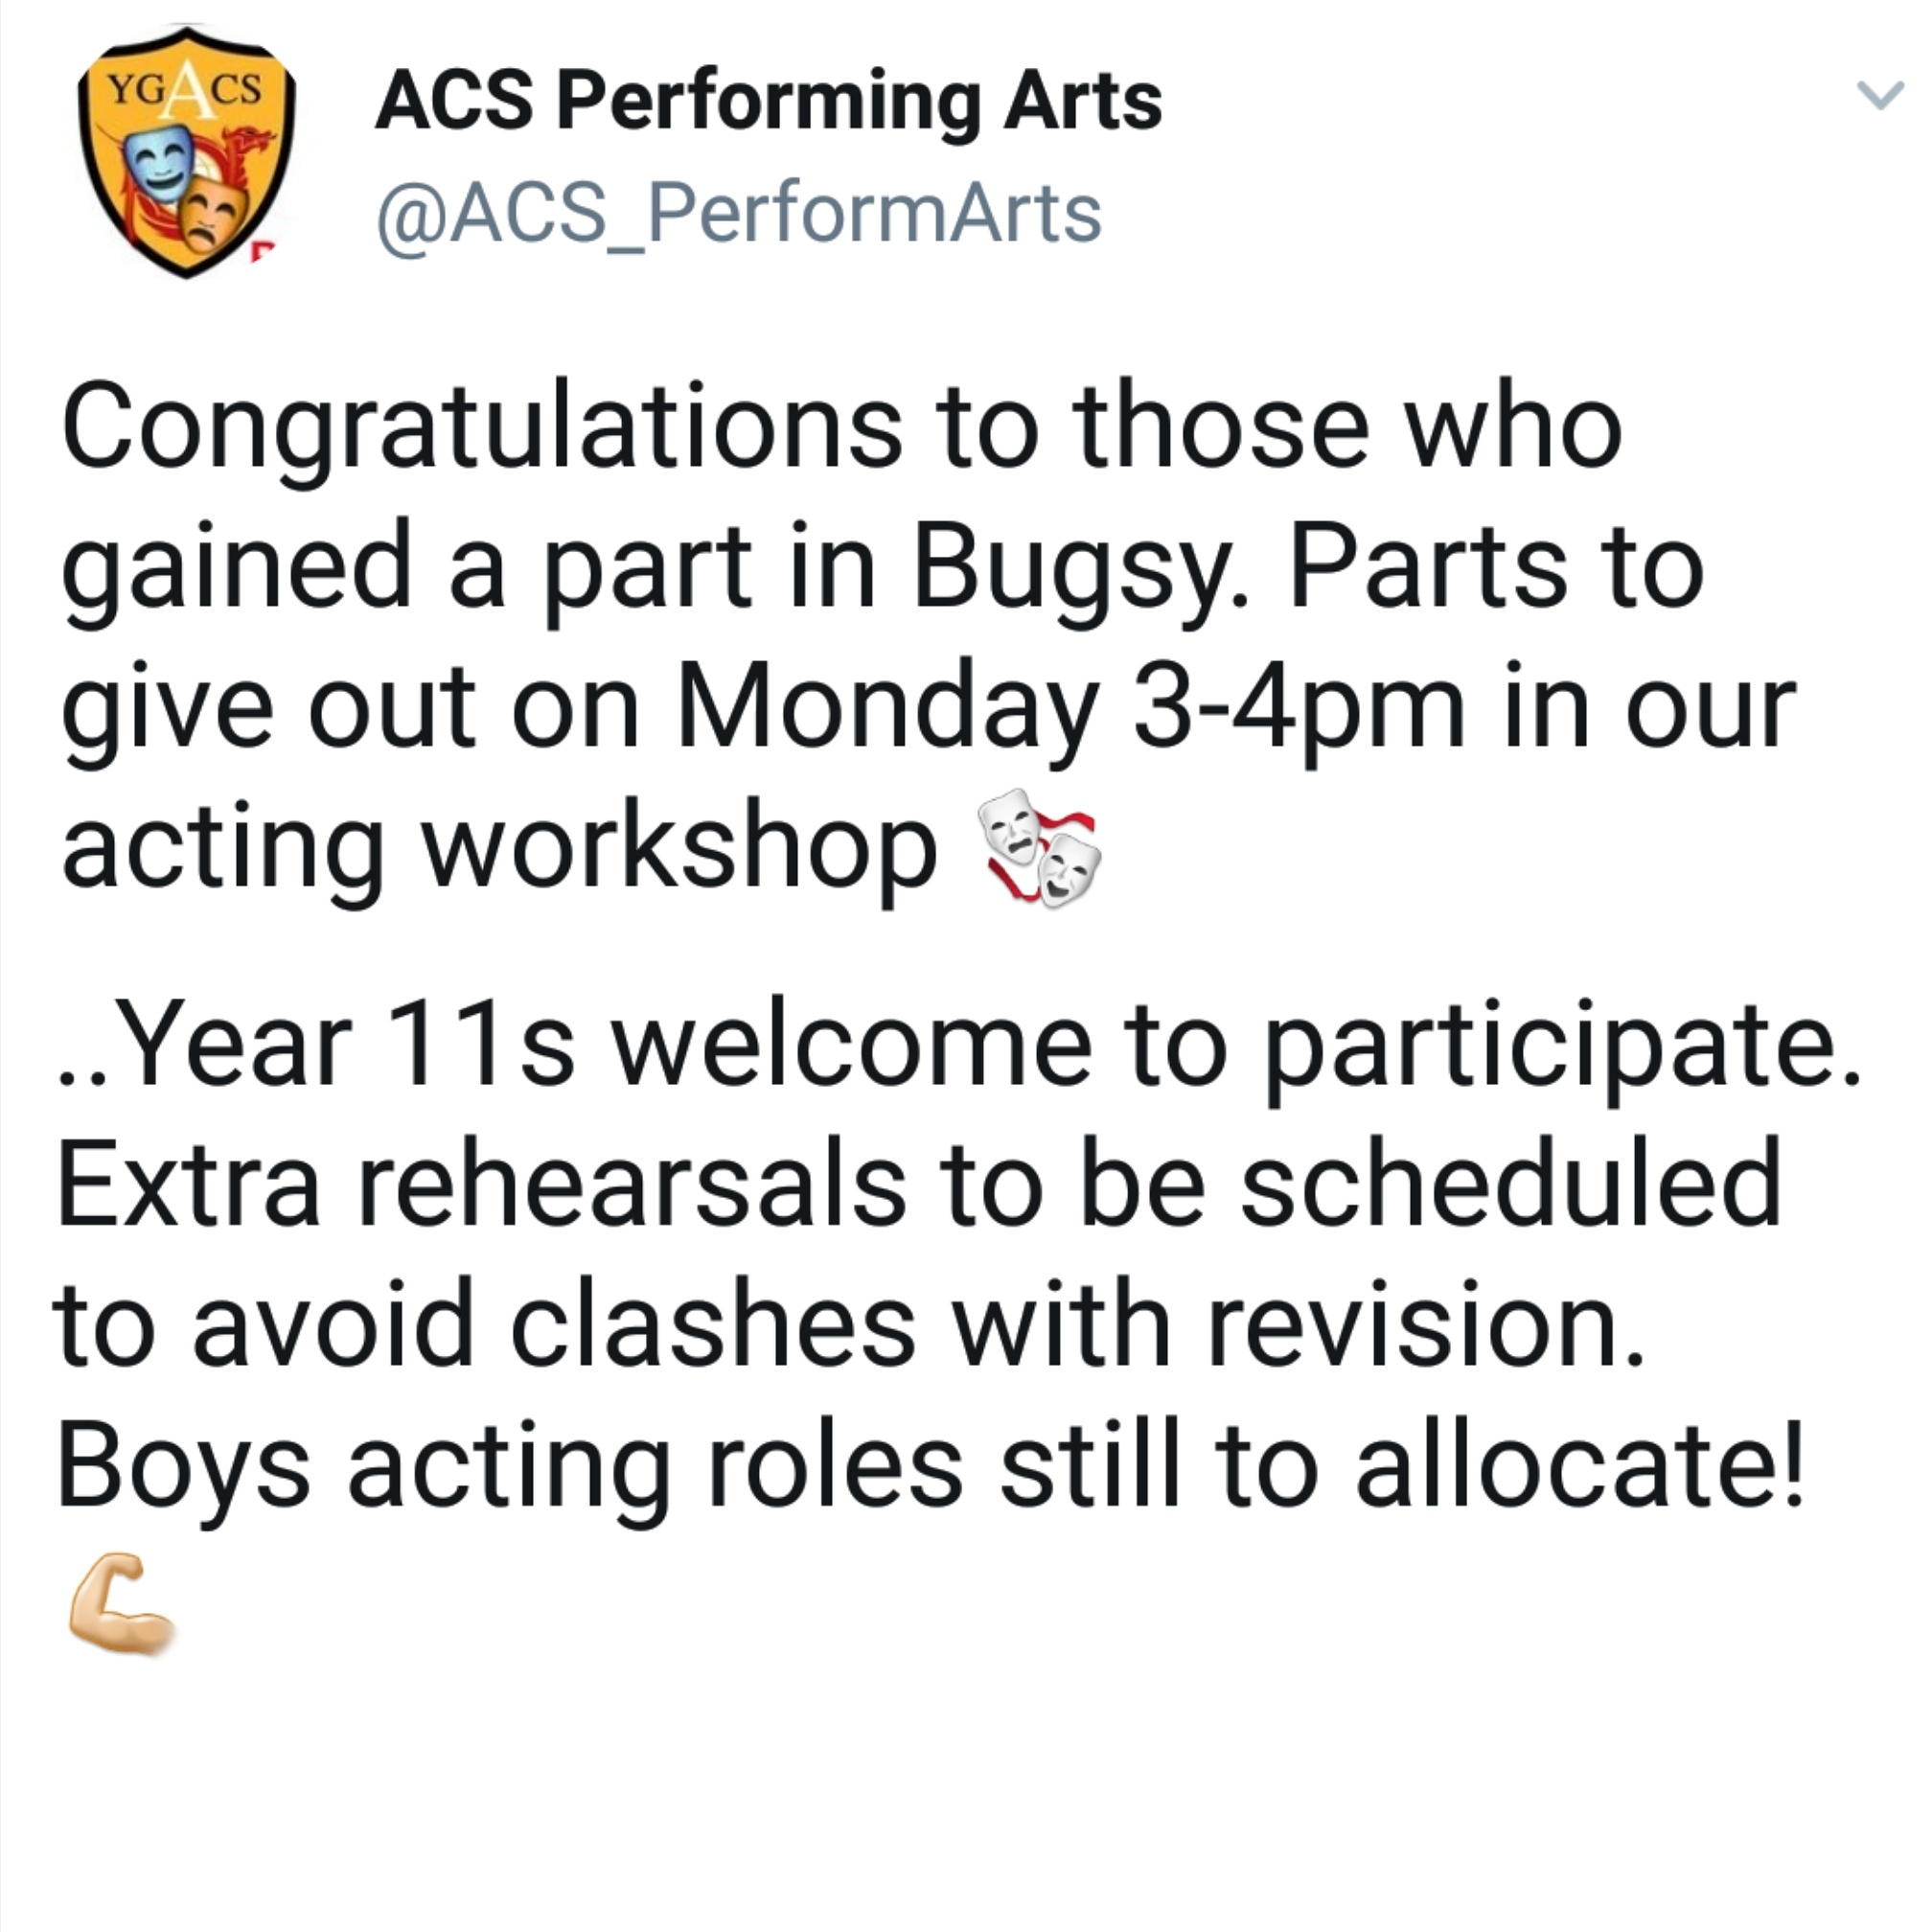 """Congratulations to those who gained a part in Bugsy. Parts to give out on Monday 3-4pm in our acting workshop 🎭 Year 11s welcome to participate. Extra rehearsals to be scheduled to avoid clashes with revision. Boys acting roles still to allocate!💪🏻"""